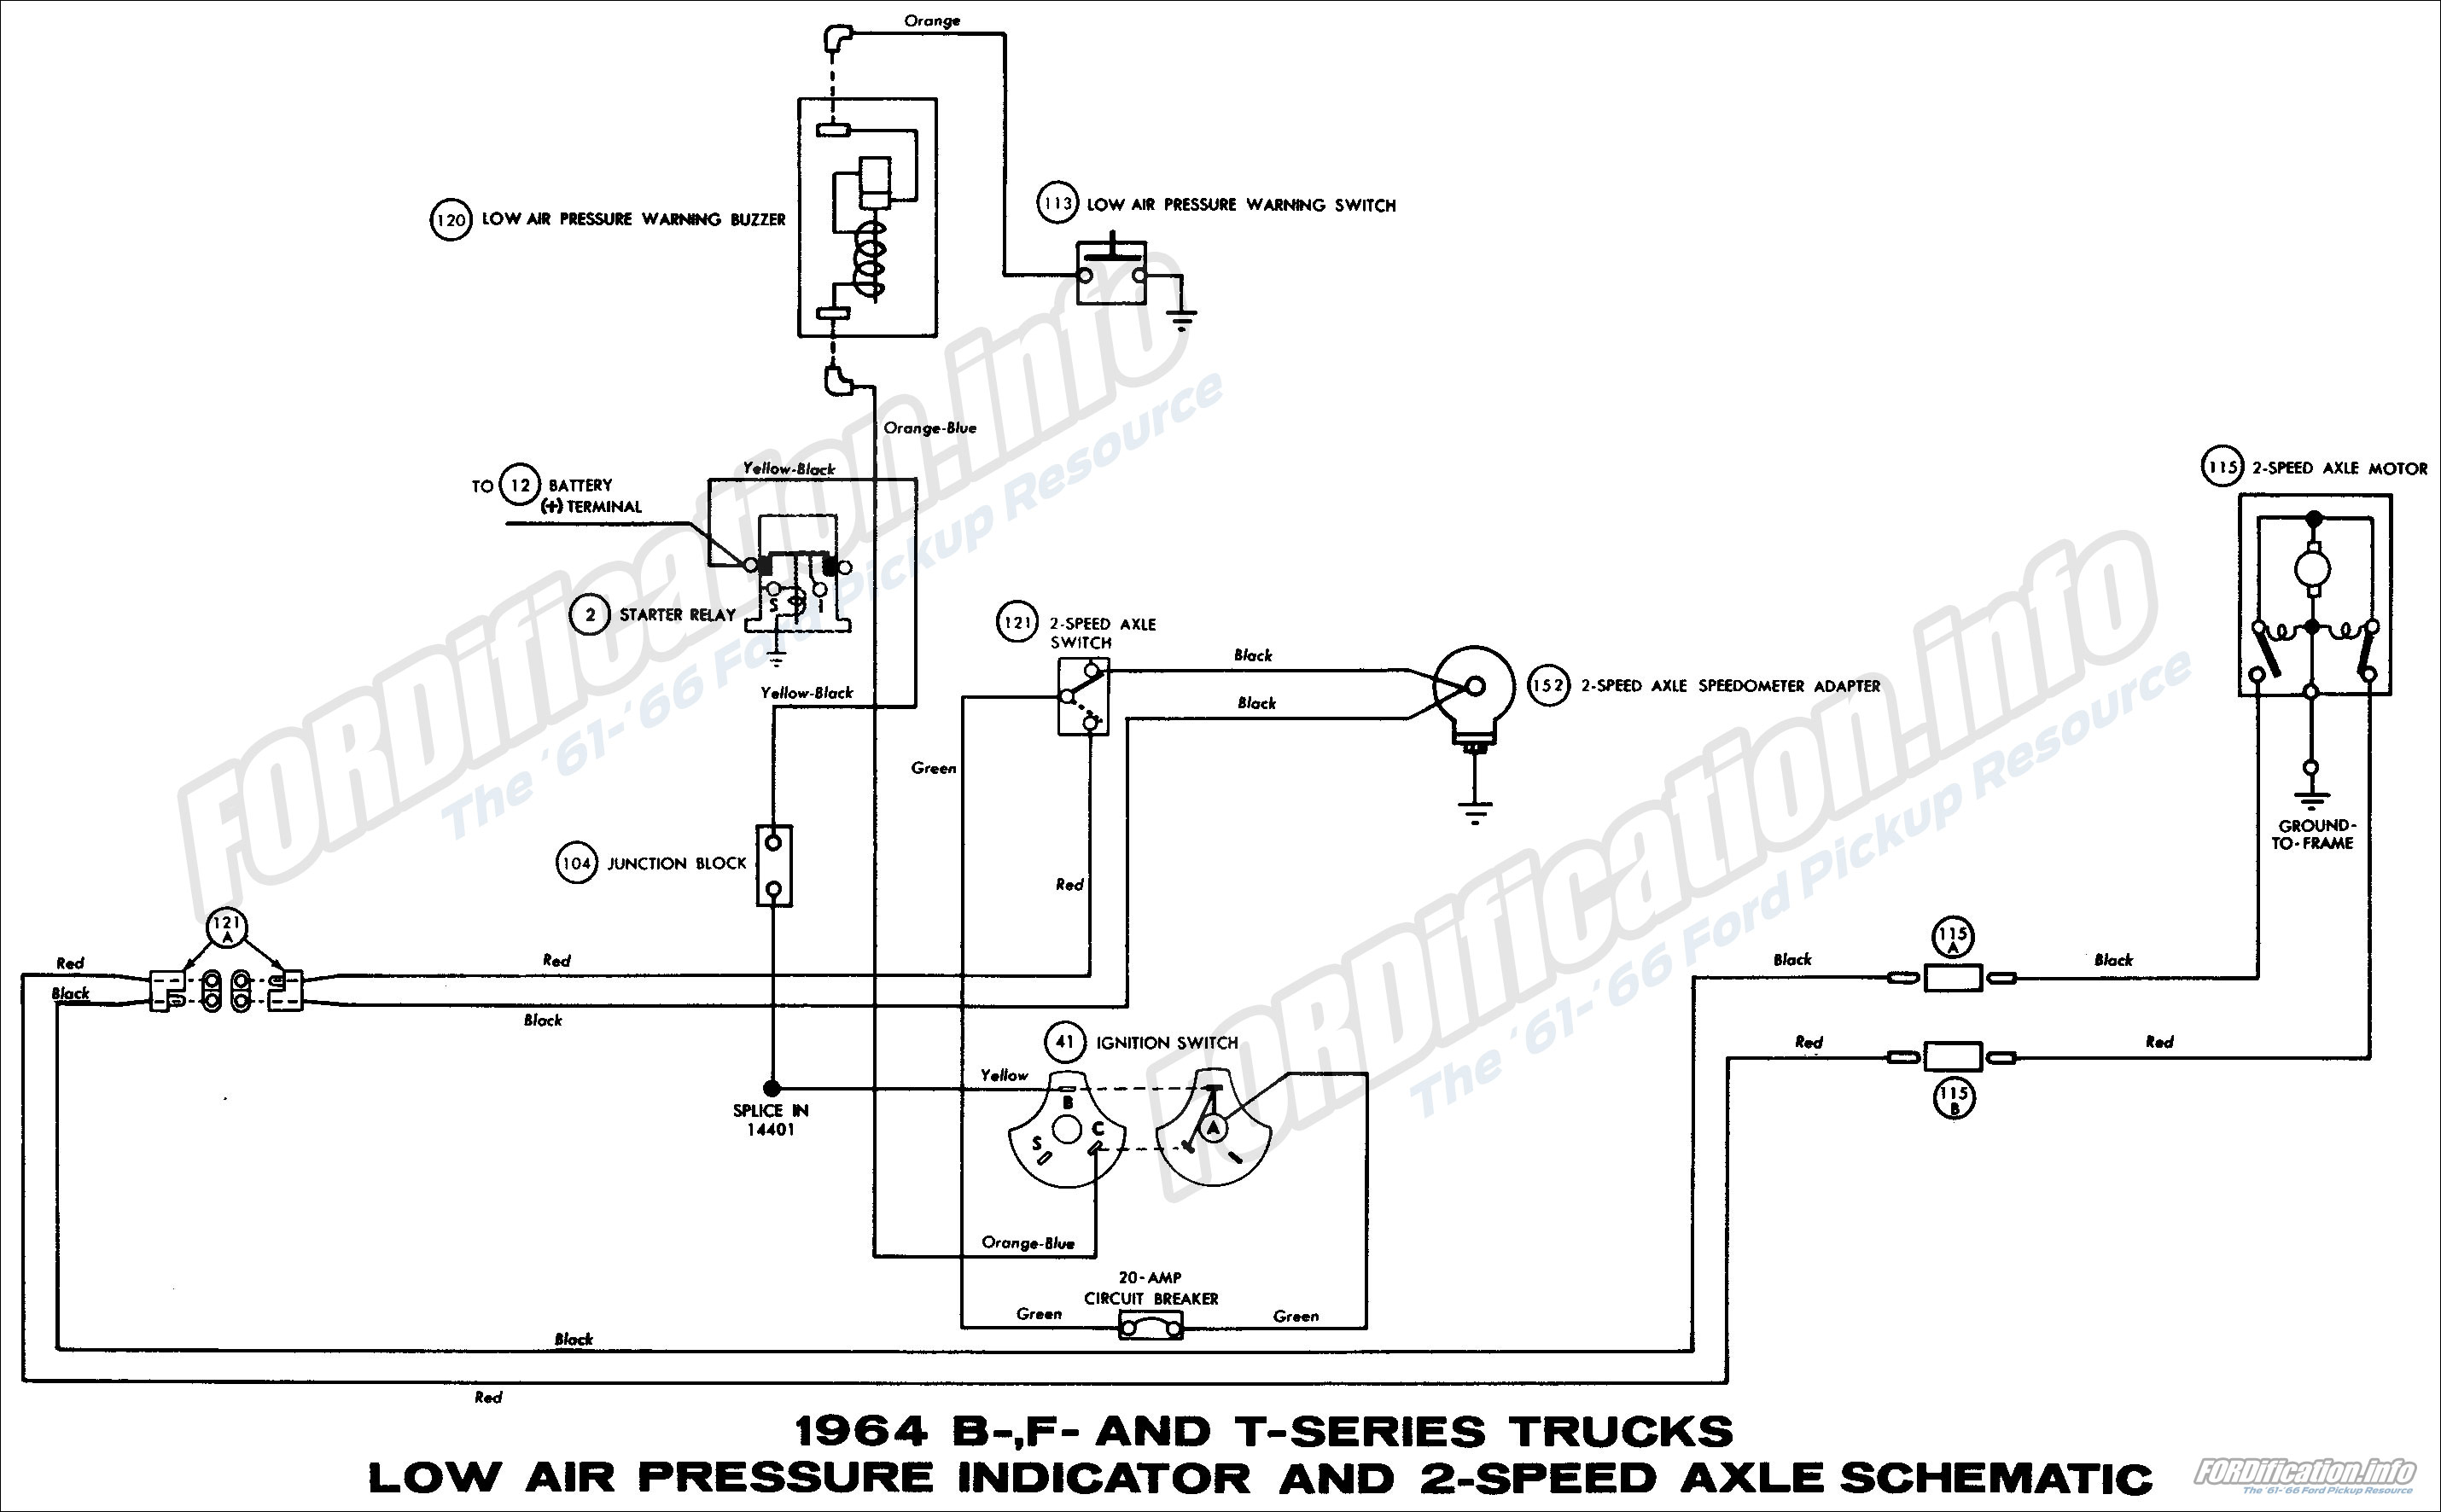 Ford B F Tseries Trucks 1964 Fuel Pump Schematic Diagram All ... Mack Starter Wiring Schematics on mack truck wiring, mack wiring diagrams 1977, mack wiring diagrams 83, 1985 mack schematics, mack brake light wiring diagram 2008, mack parts, mack ecu schematics, mack ch613 wiring diagram for 2009, mack wiring stereo, mack suspension, mack wiring diagram for 1988, mack diagnostic codes, mack wiring harness, mack truck schematics,